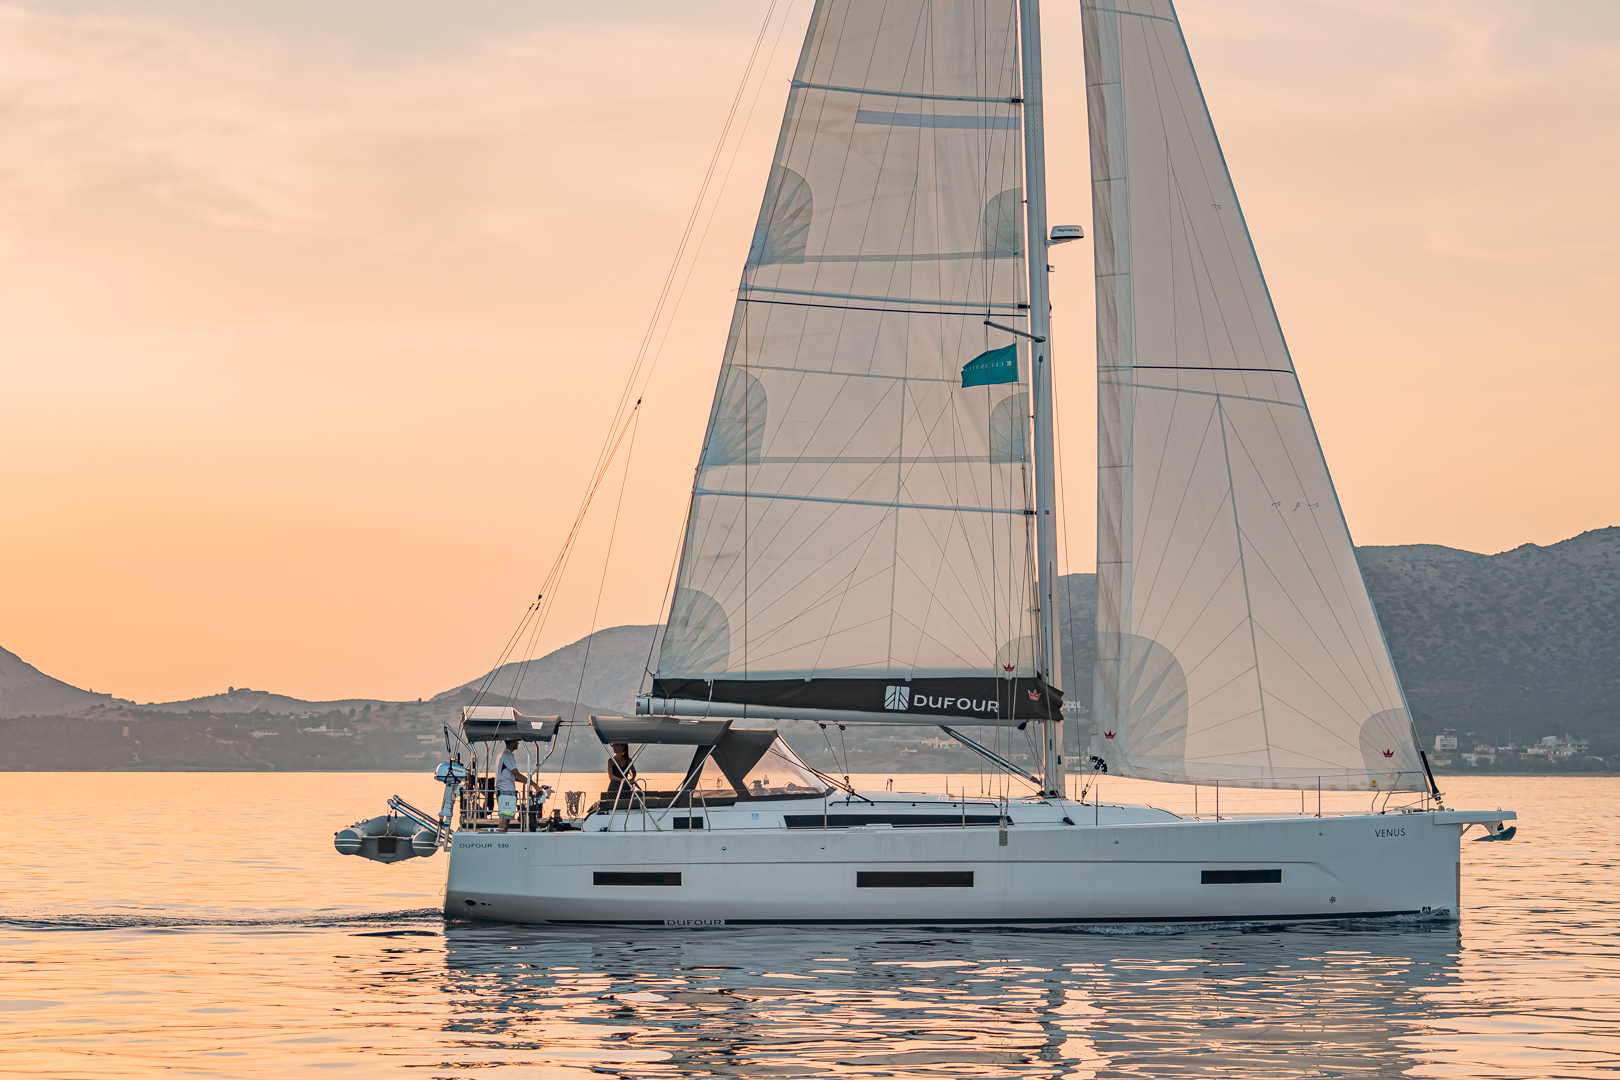 Dufour 530 - Luxury Sailing Yacht - Athens (11)